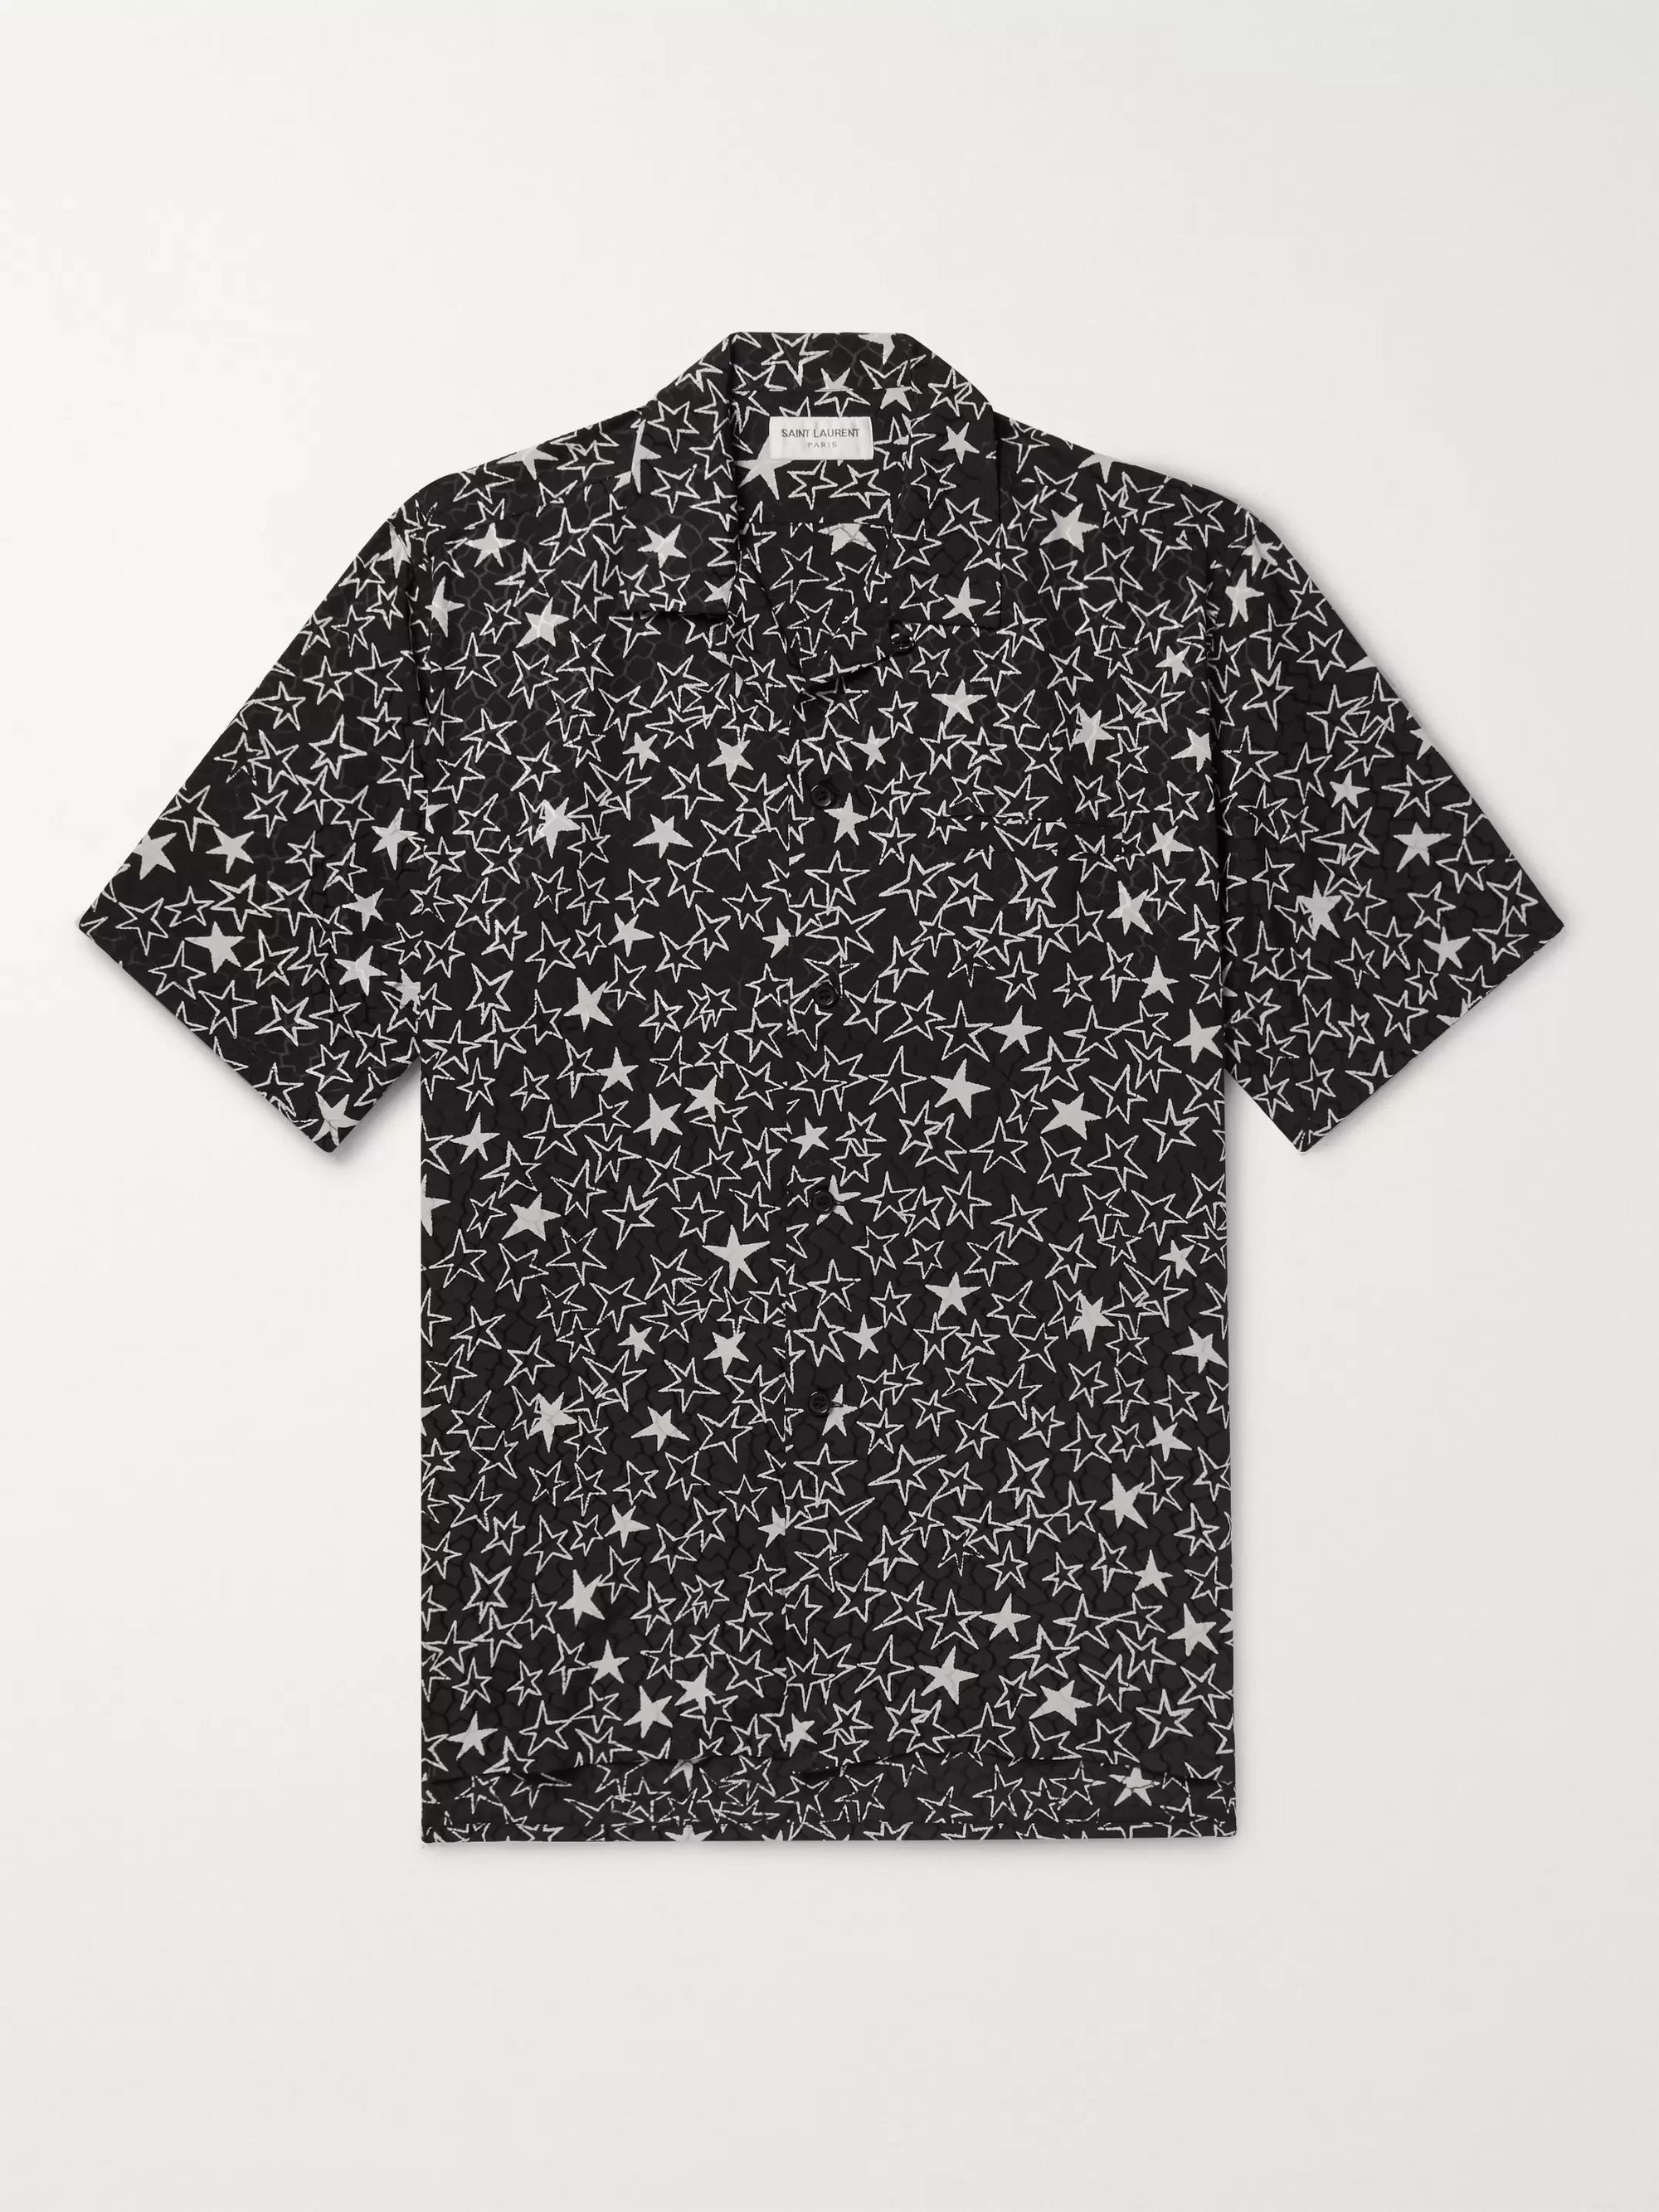 SAINT LAURENT Camp-Collar Printed Silk-Jacquard Shirt